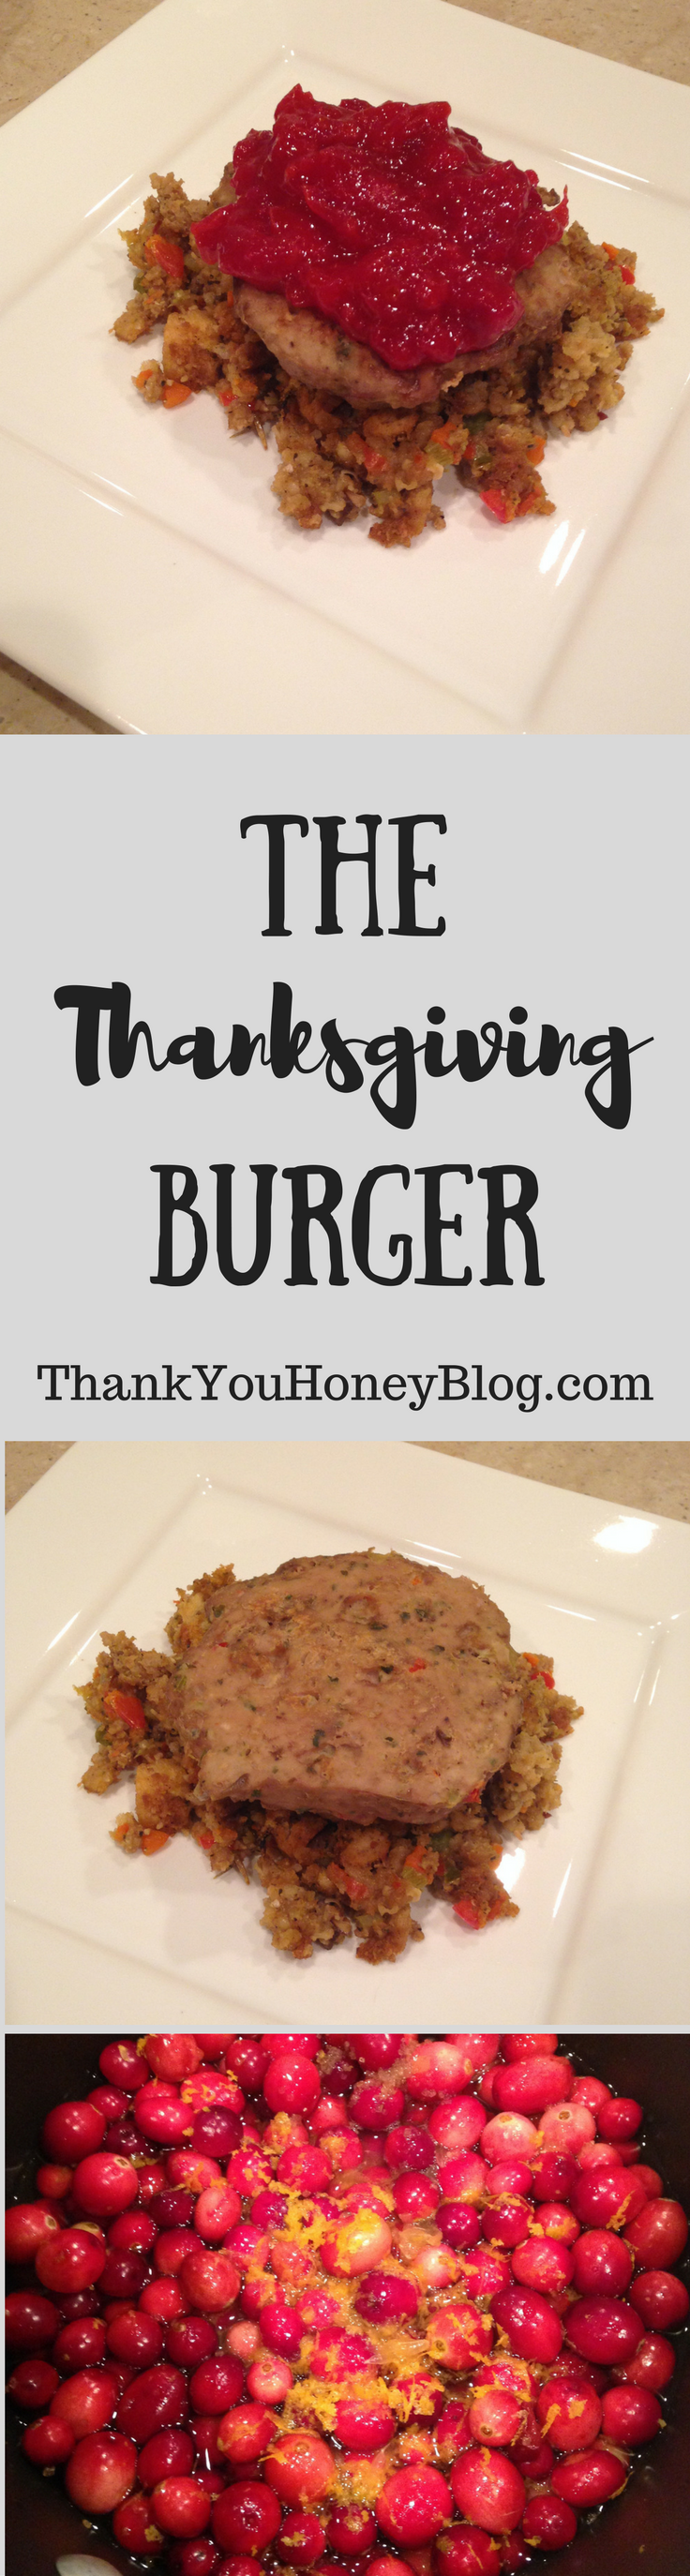 The Thanksgiving Burgers